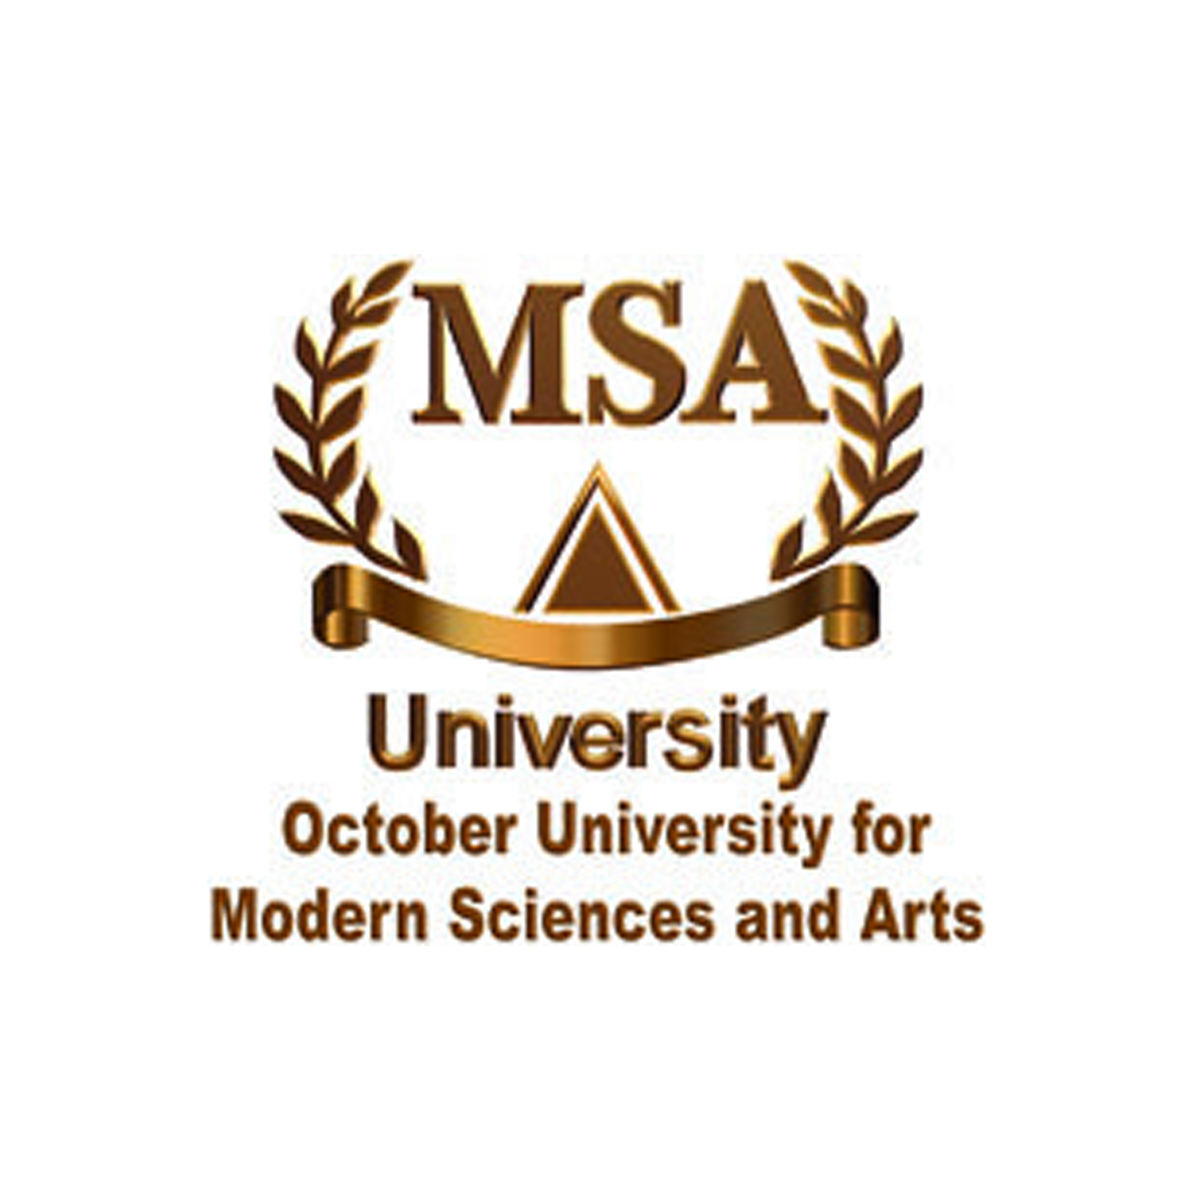 October University for Modern Sciences and Arts MSA